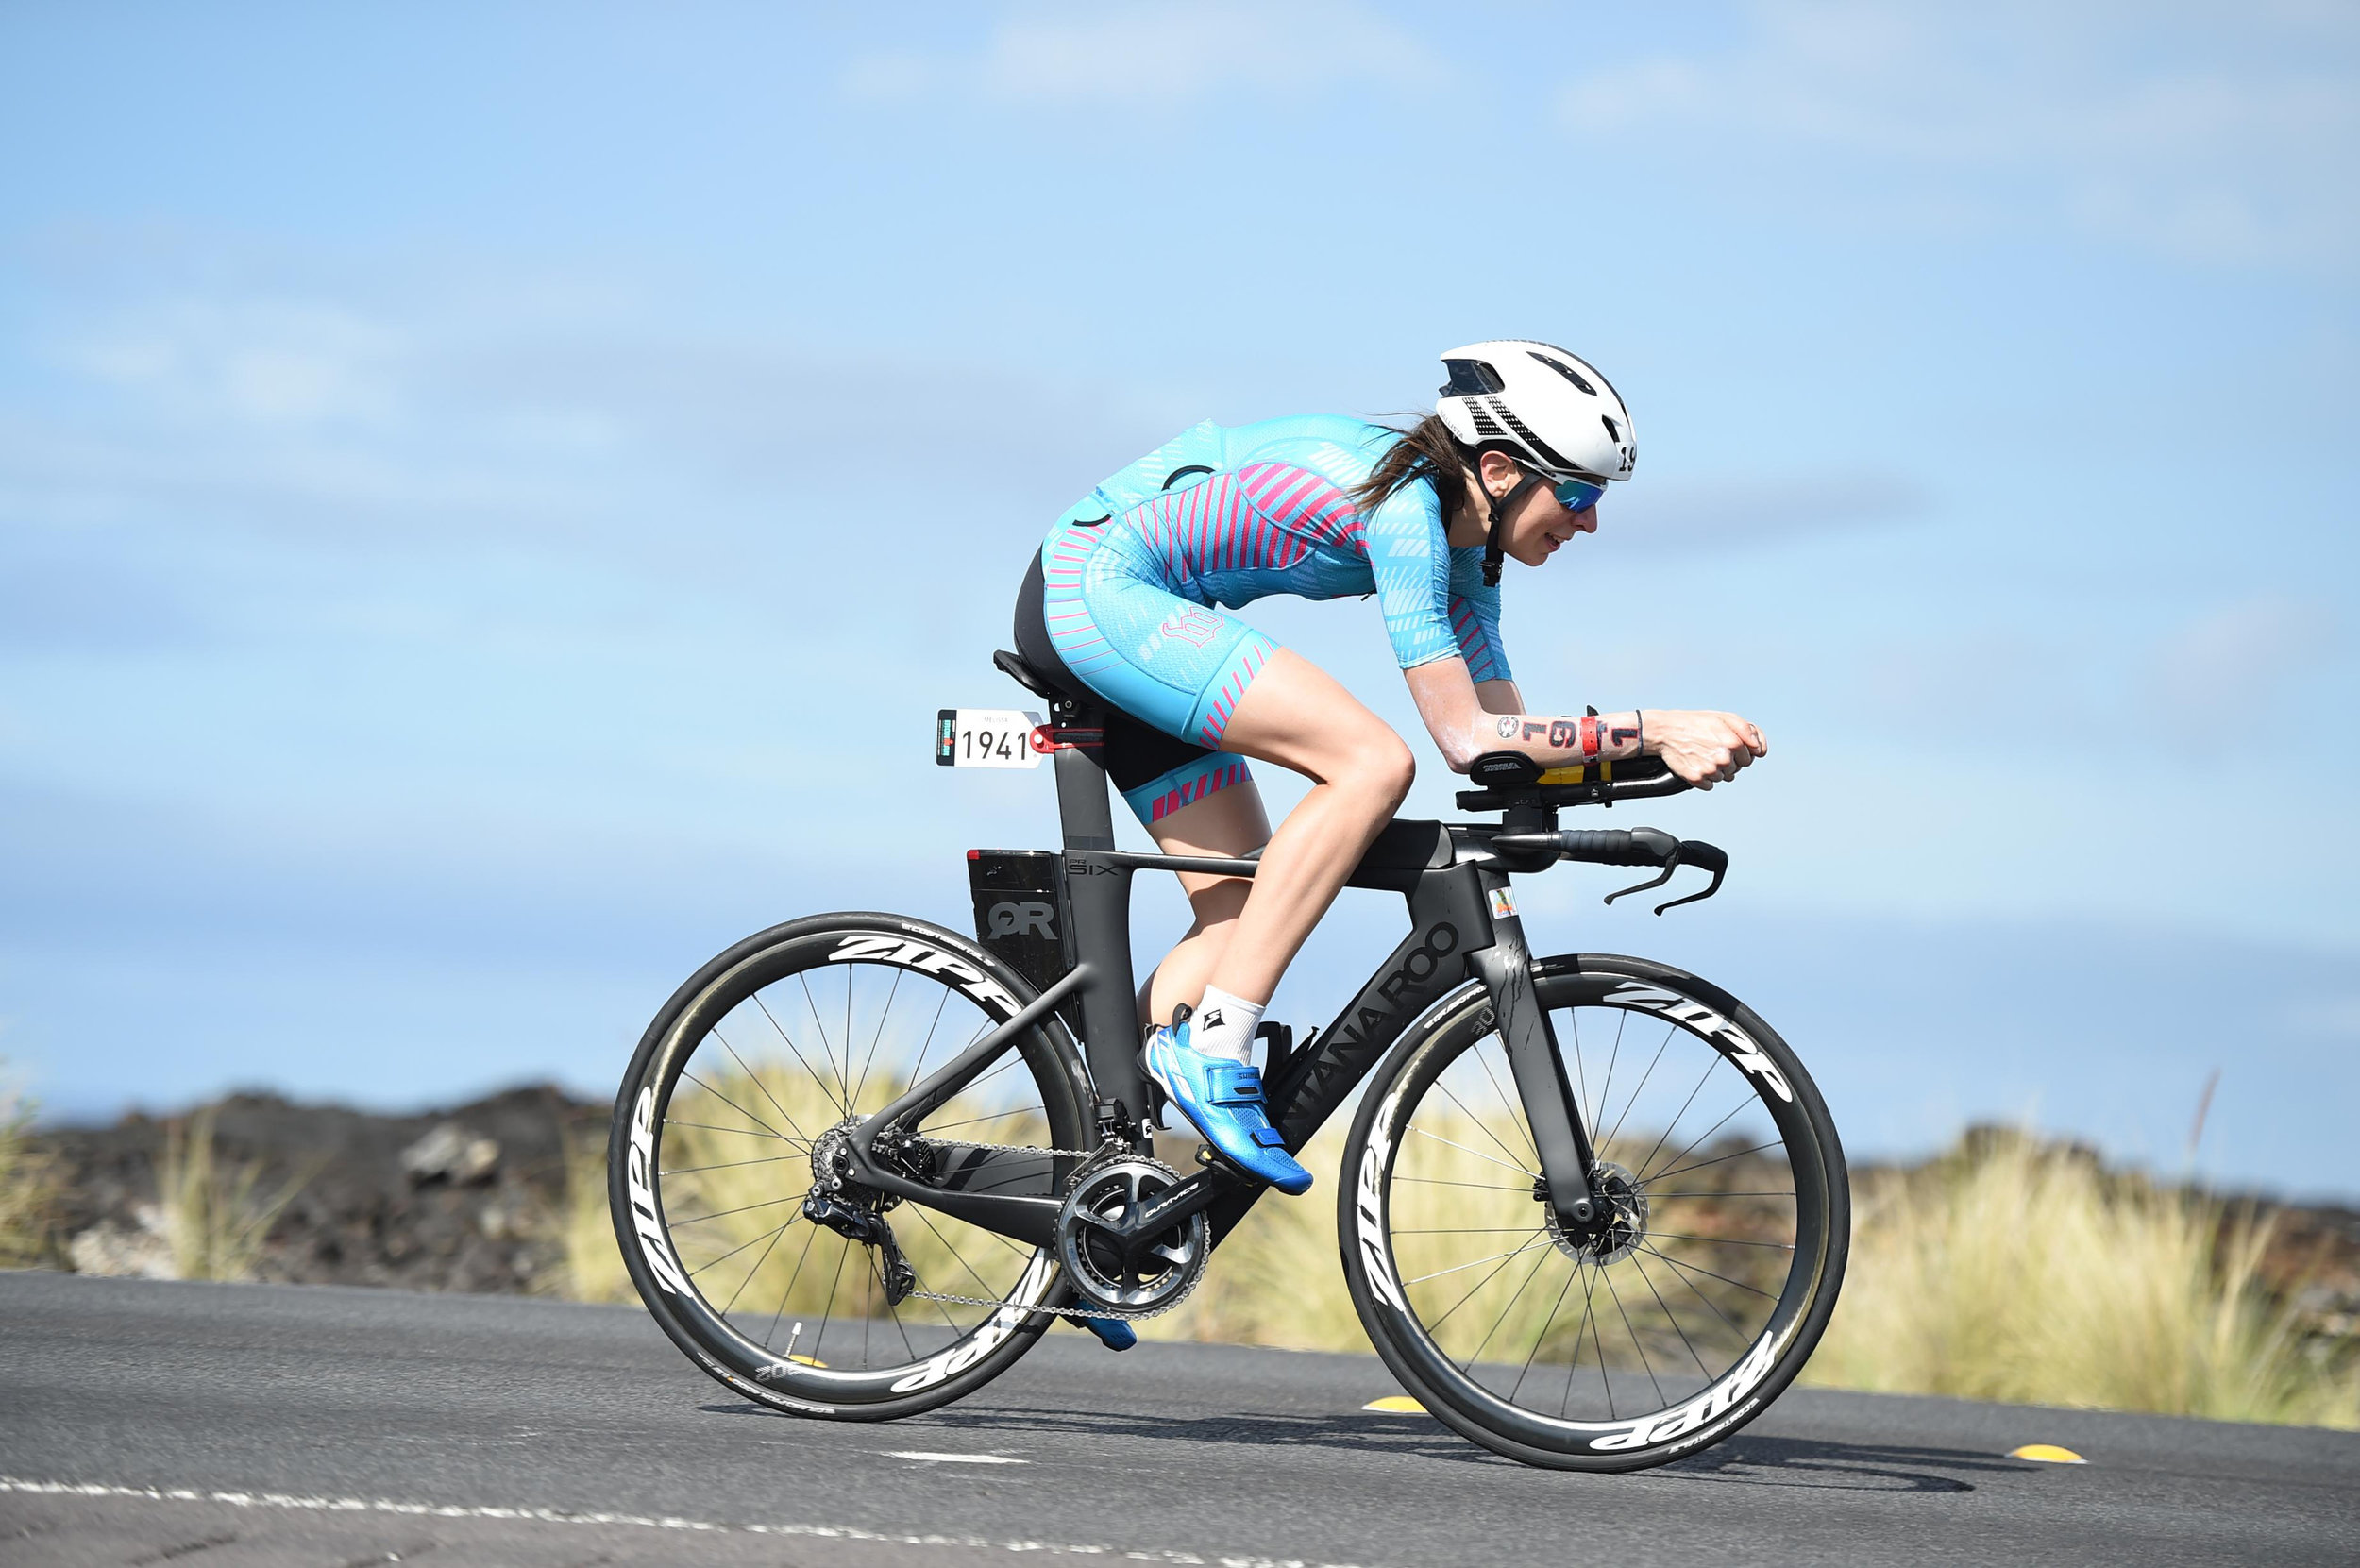 Coach_Terry_Wilson_Pursuit_of_The_Perfect_Race_IRONMAN_World_Championship_Kona_Missy_Norcross_F2.JPG